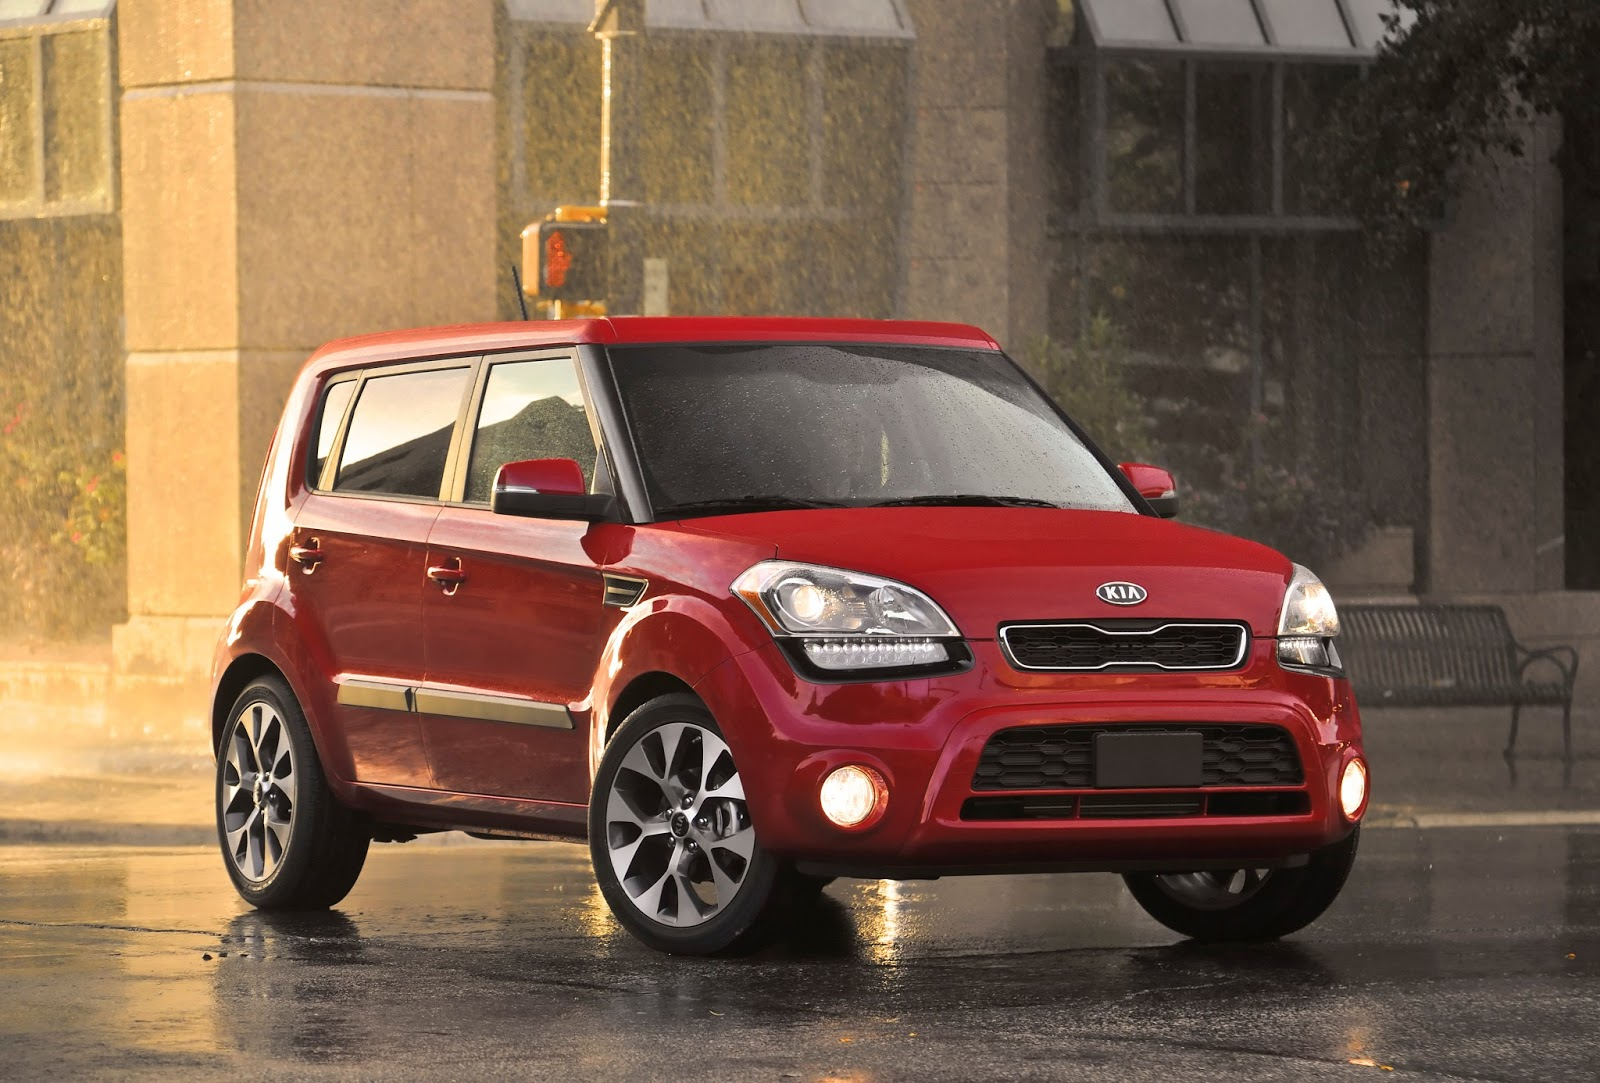 kia soul ev with 200 km range to launch in 2014 electric vehicle news. Black Bedroom Furniture Sets. Home Design Ideas